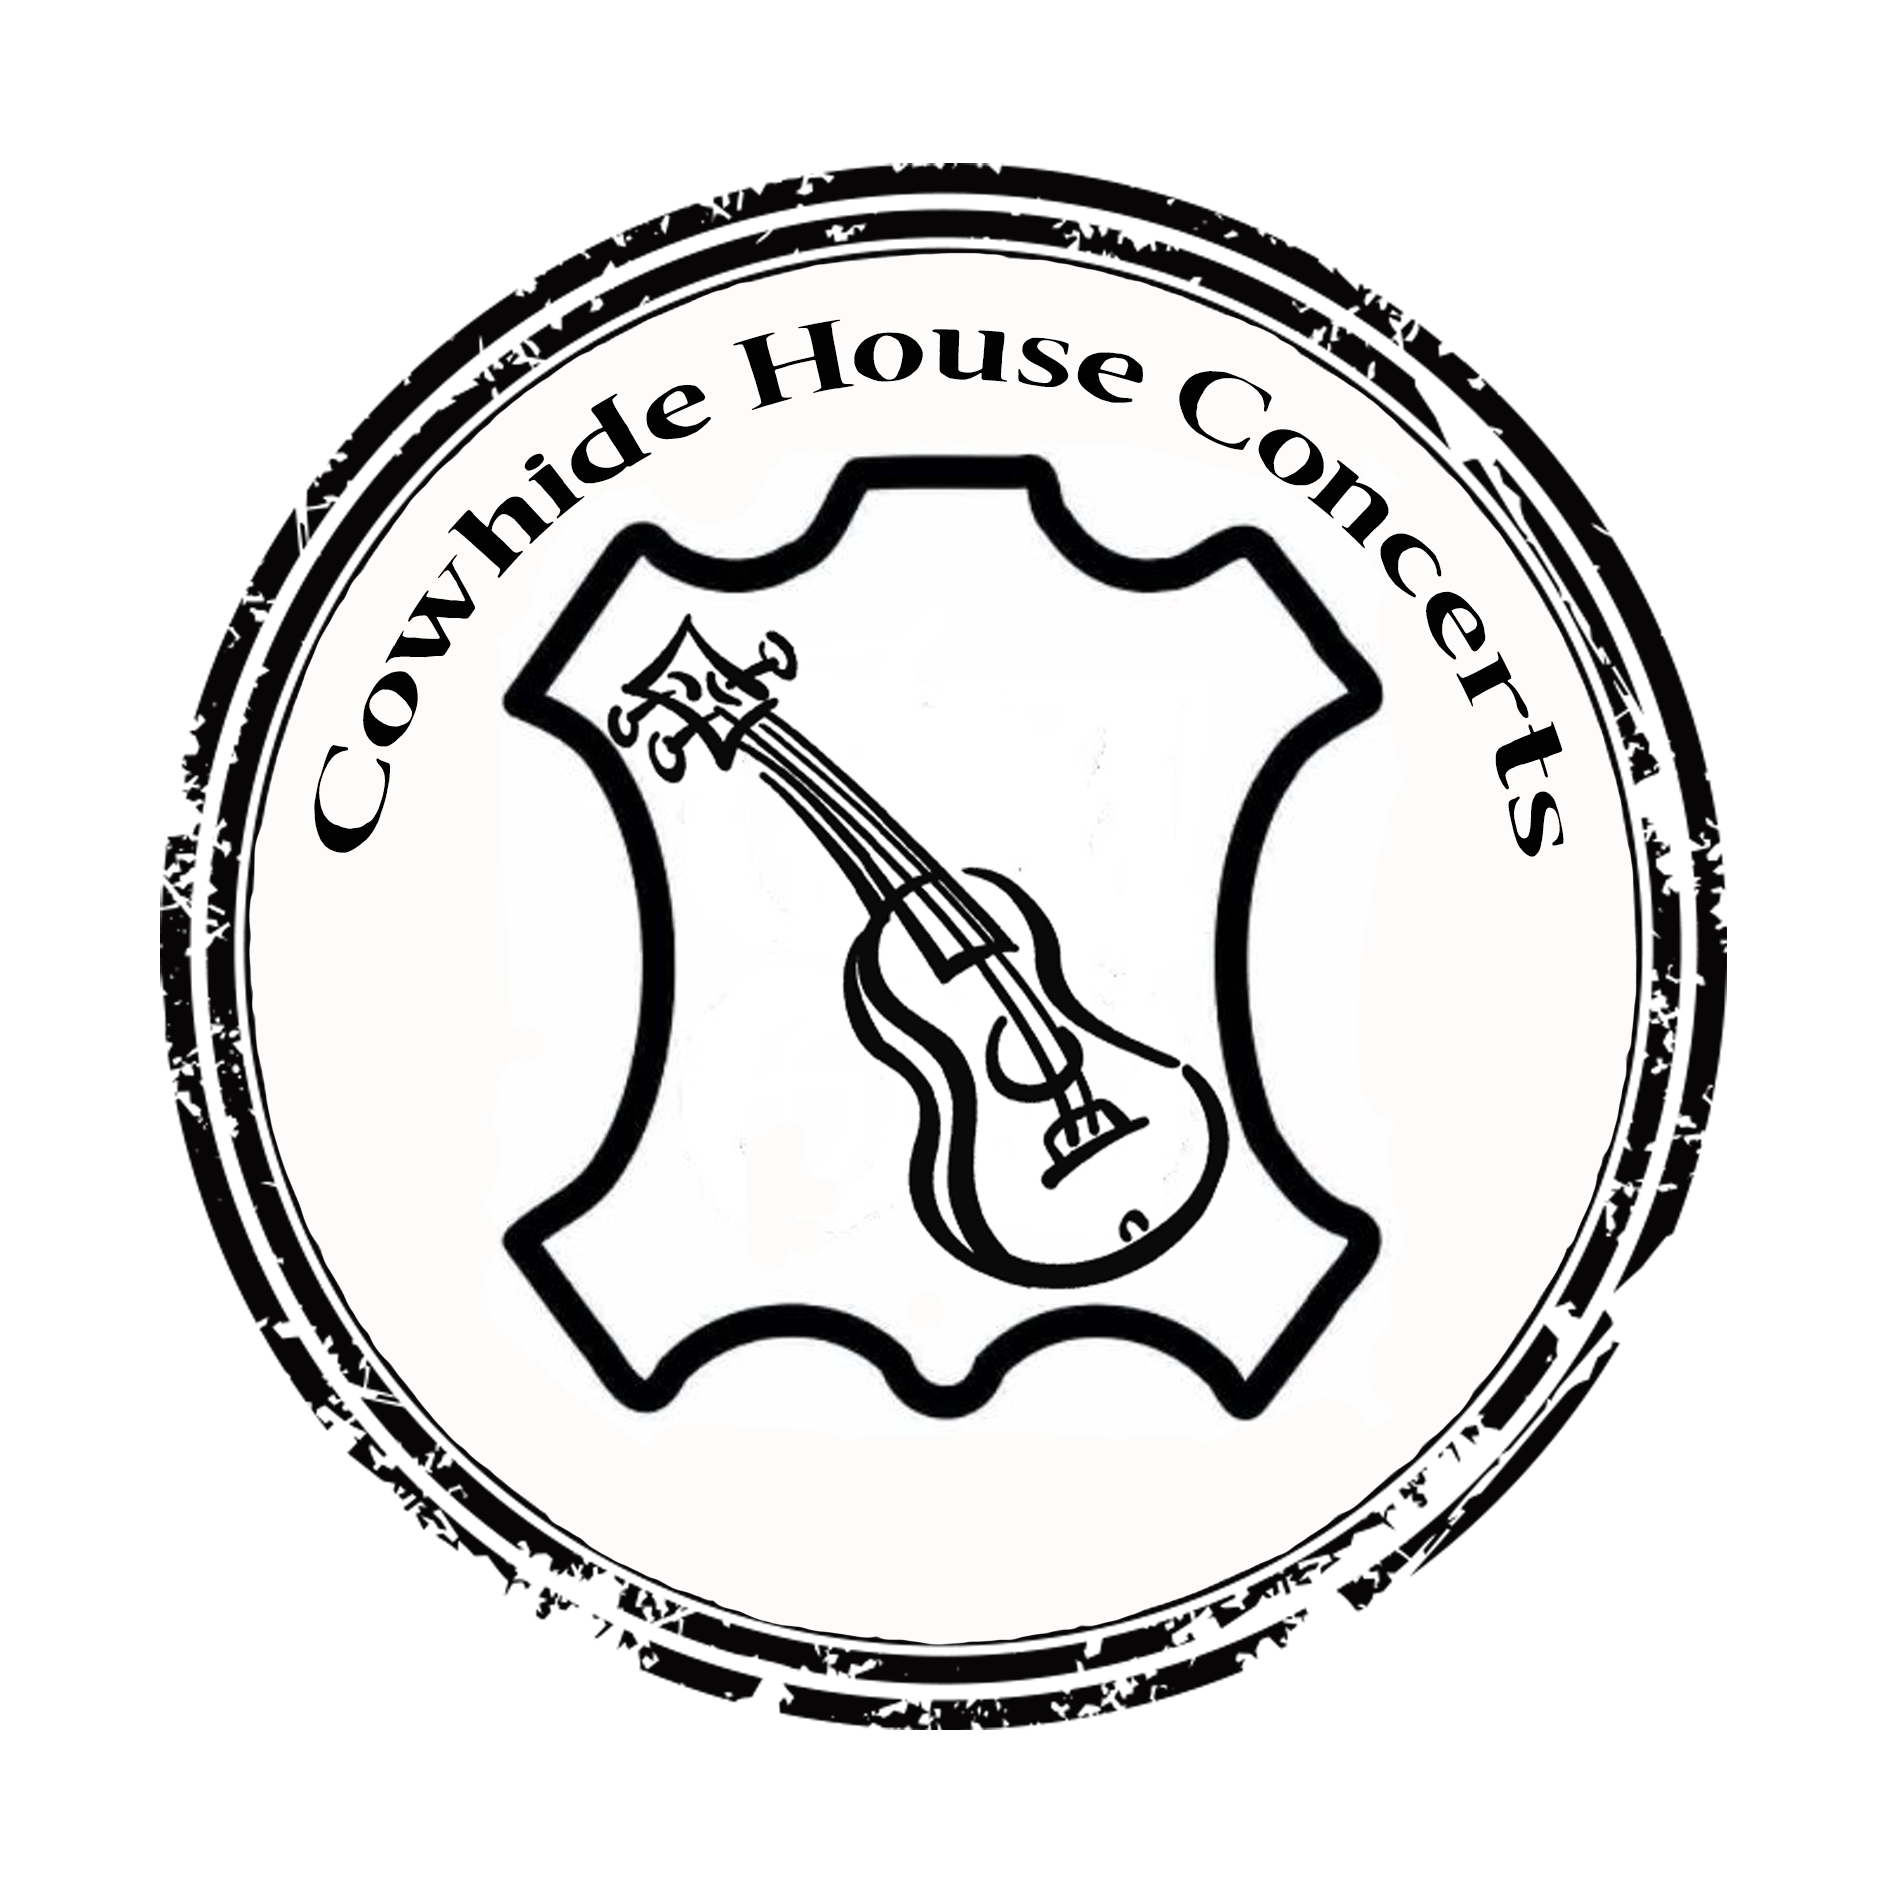 Cowhide House Concerts